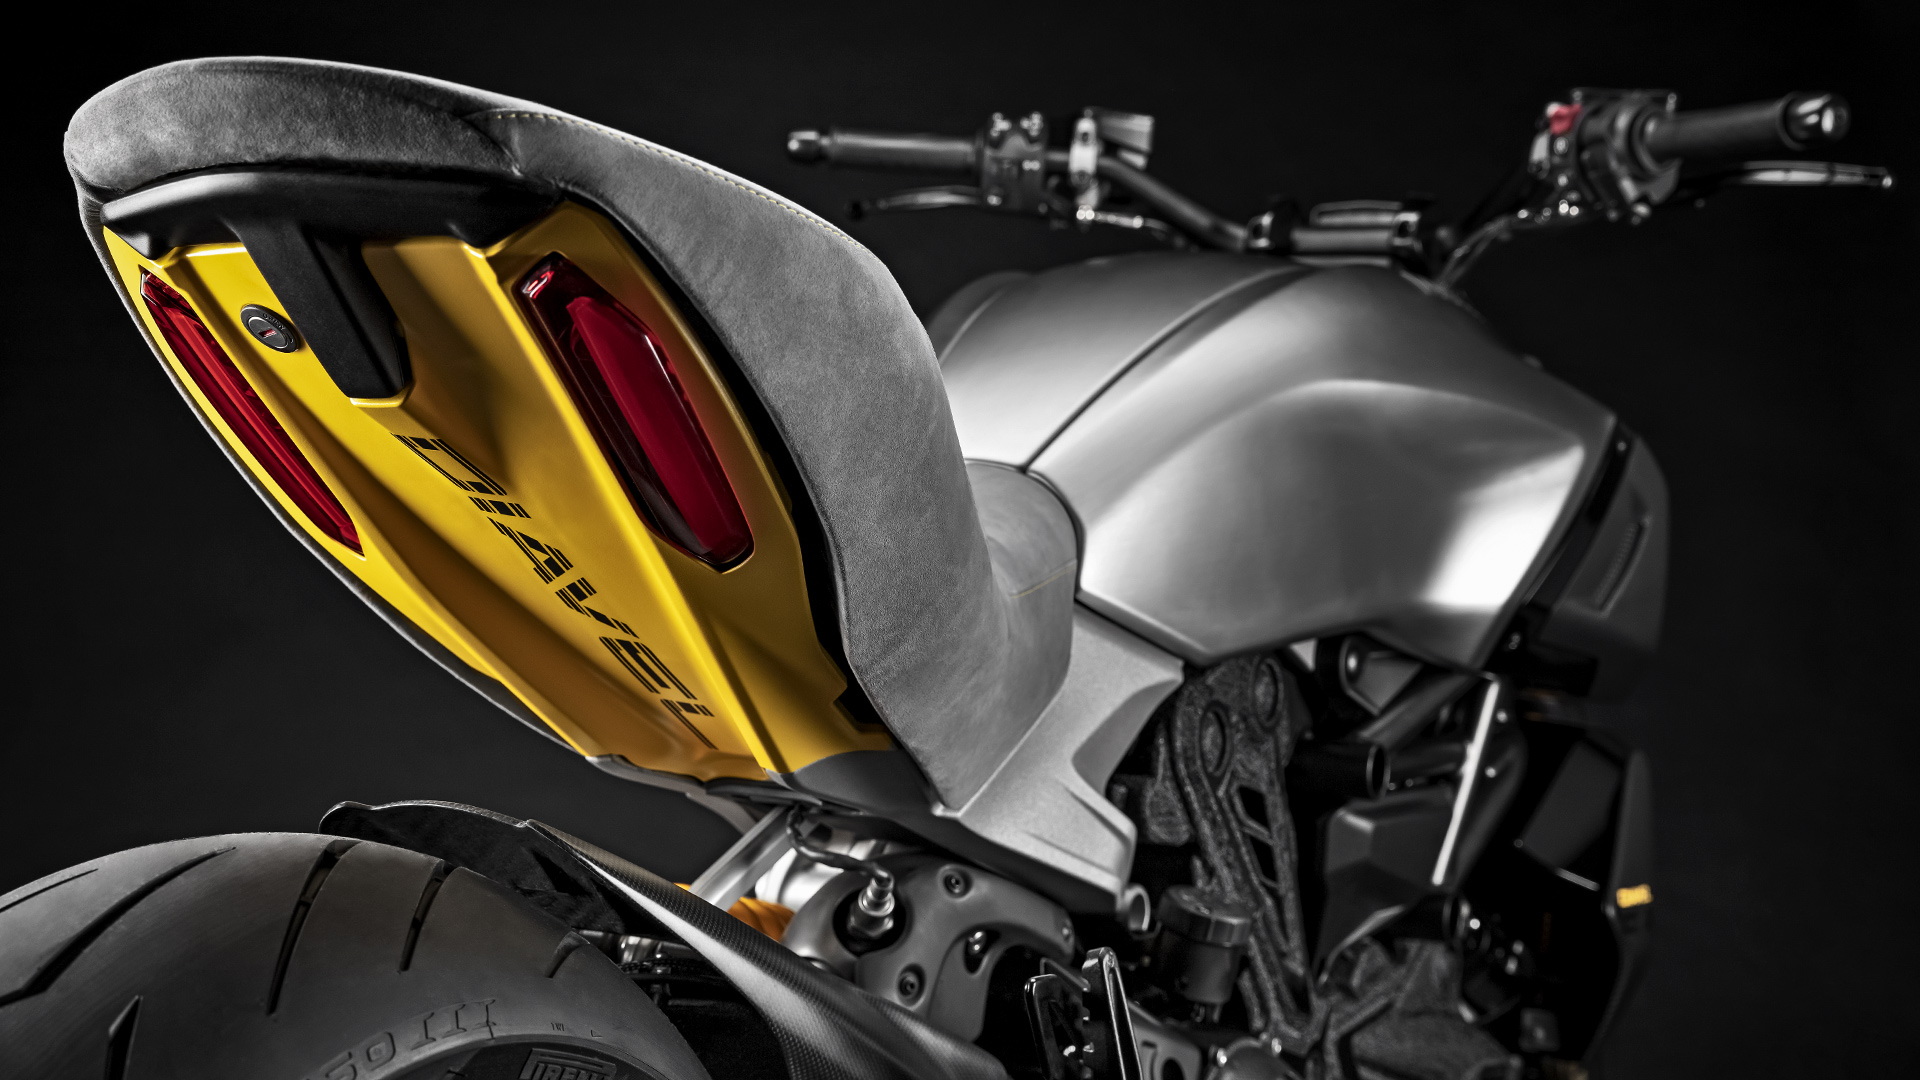 Diavel-1260-Design-Week-26-Gallery-1920x1080.jpg